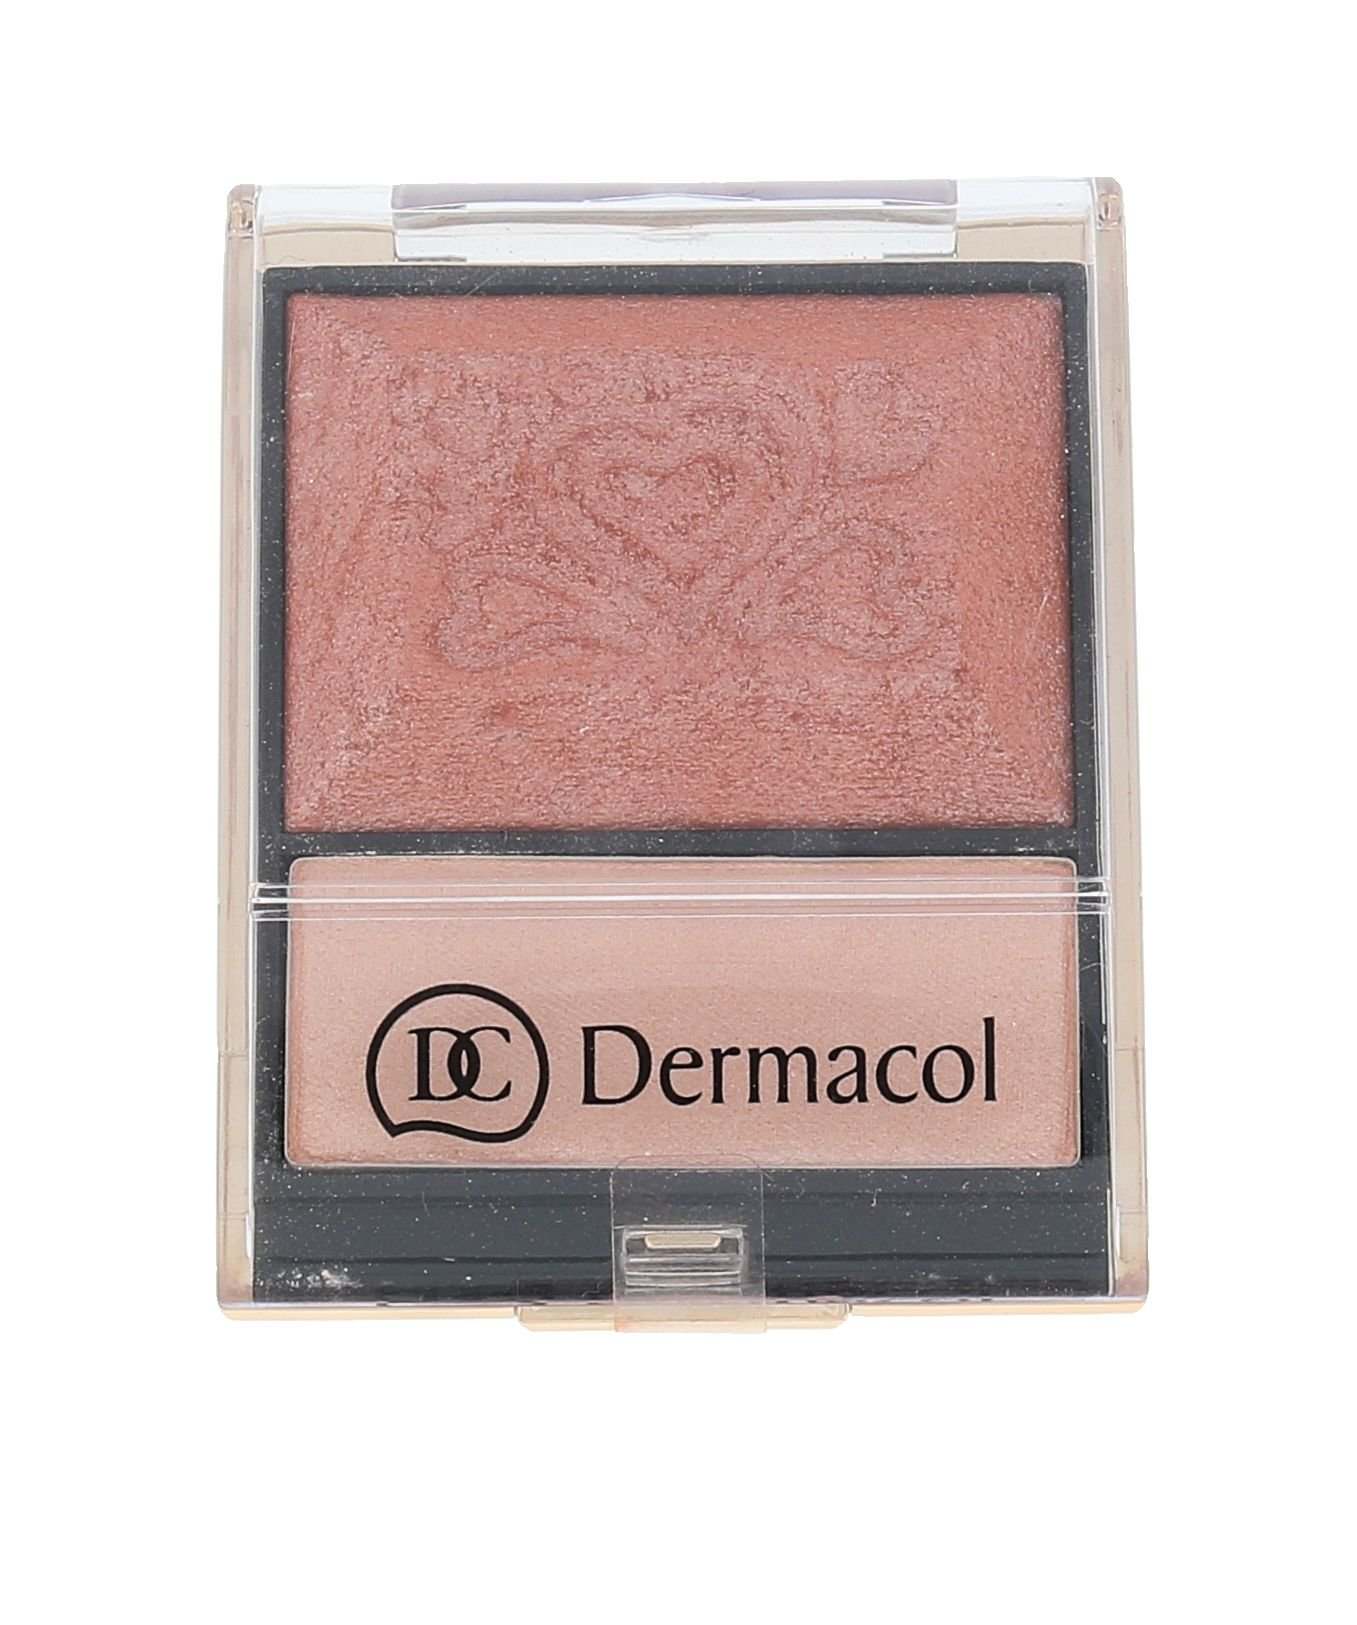 Dermacol Blush & Illuminator Cosmetic 9ml 2